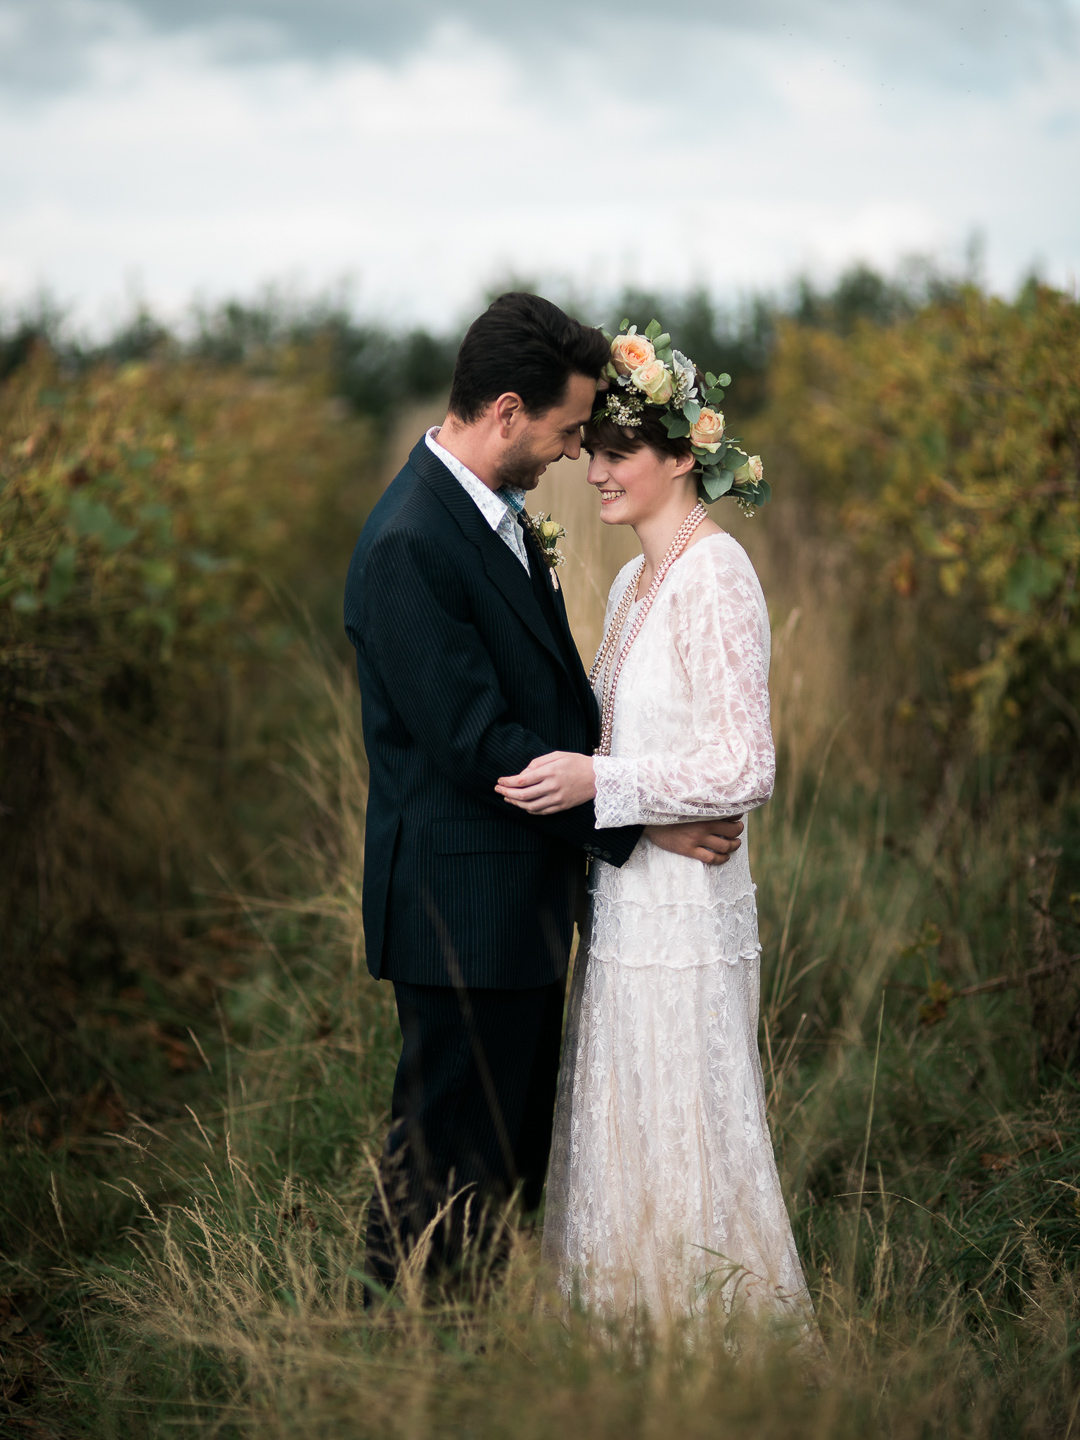 Festival Brides John Barwood Photography Styled Shoot23